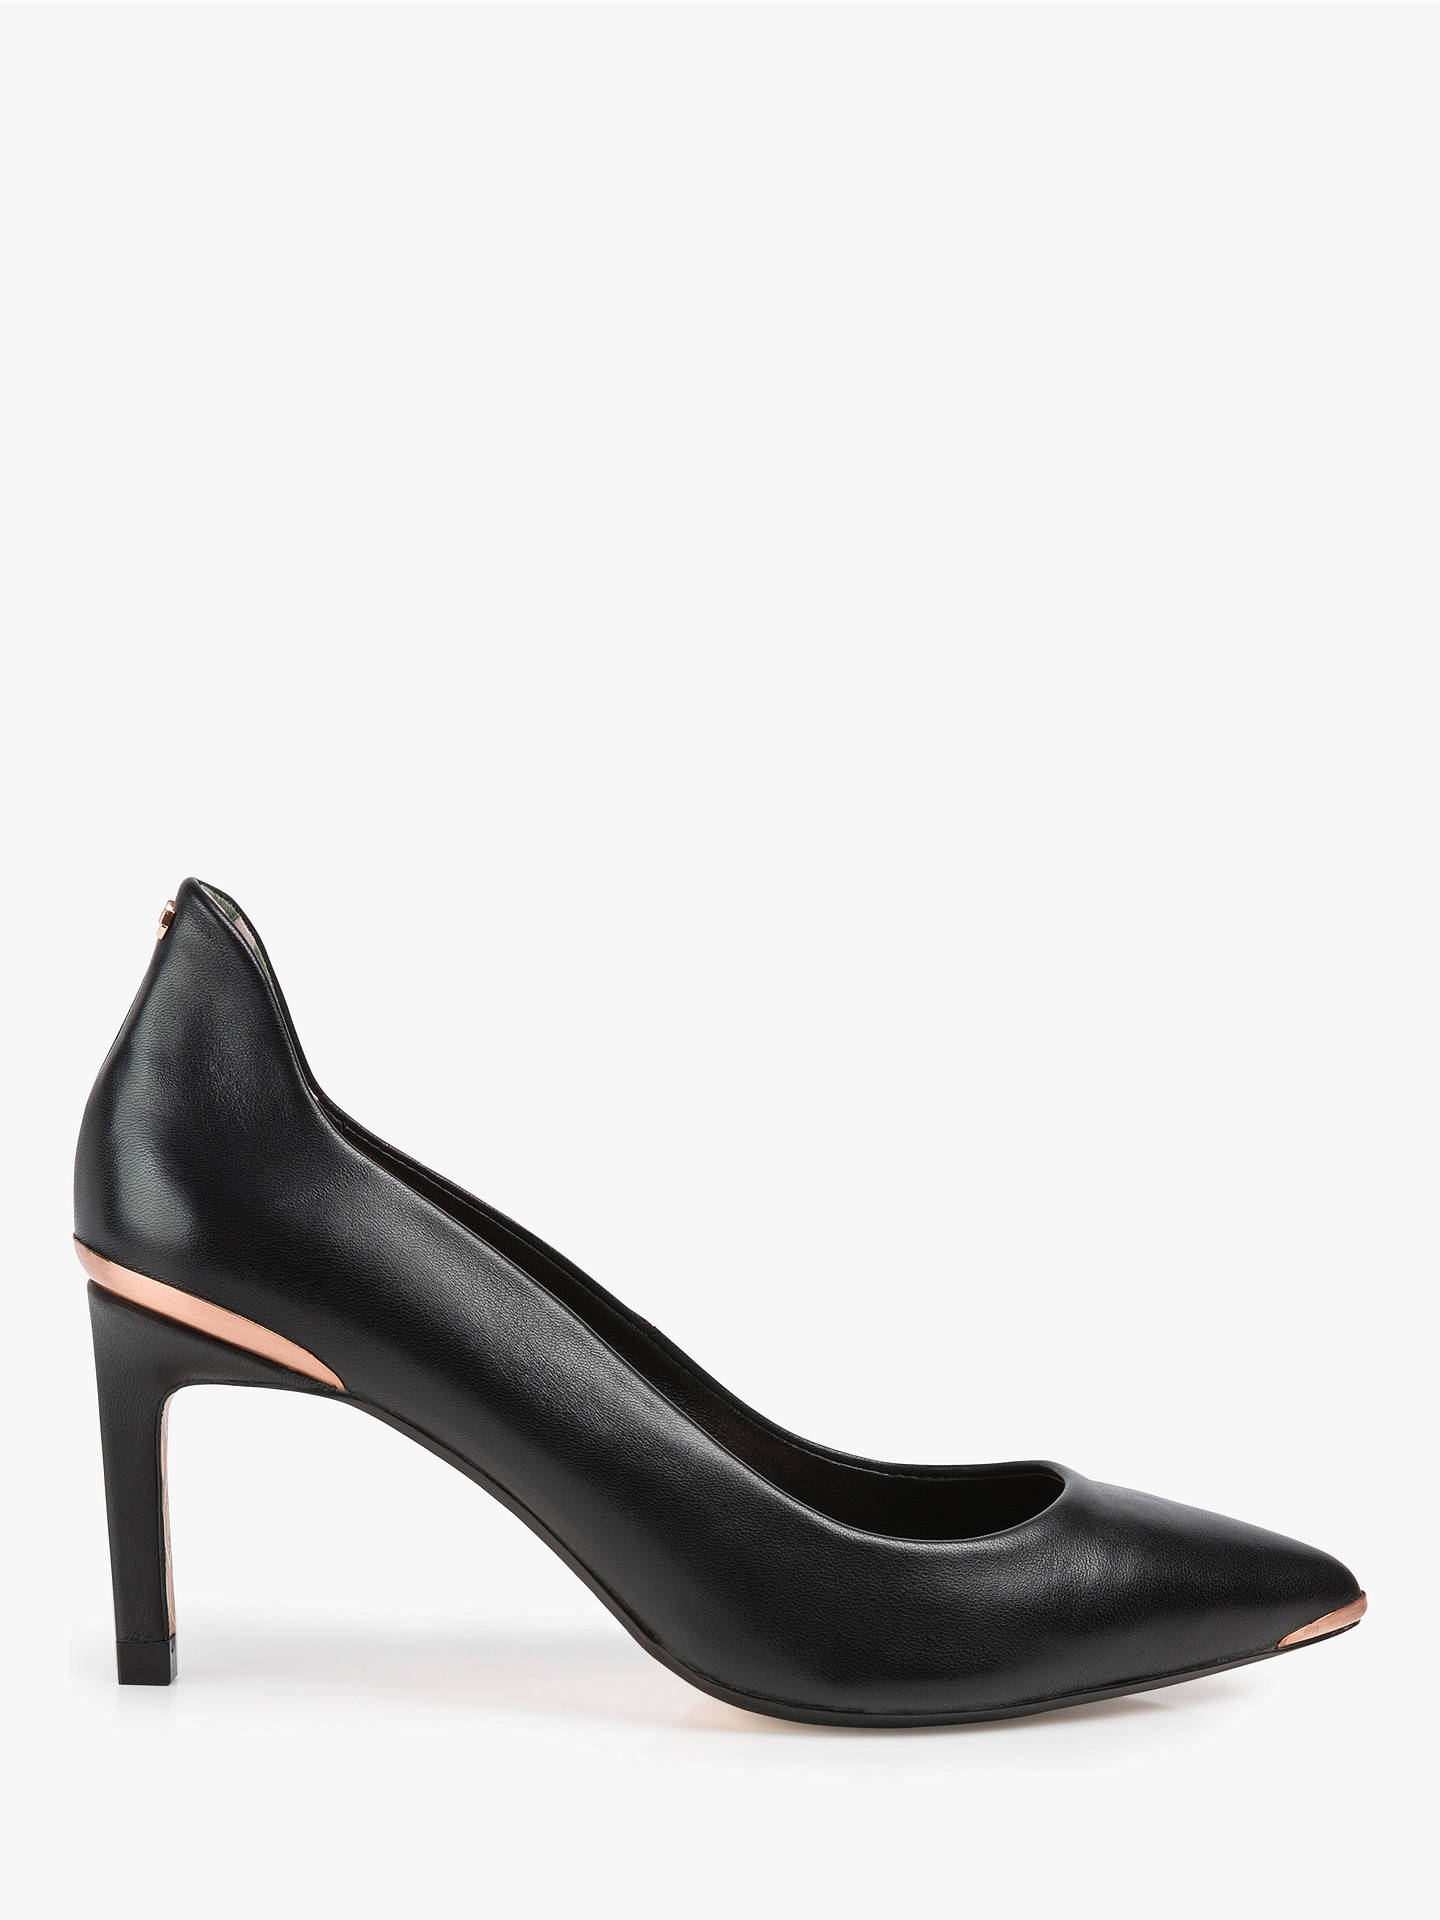 74de496f079 Ted Baker Eriin Pointed High Heel Court Shoes, Black Leather at John ...